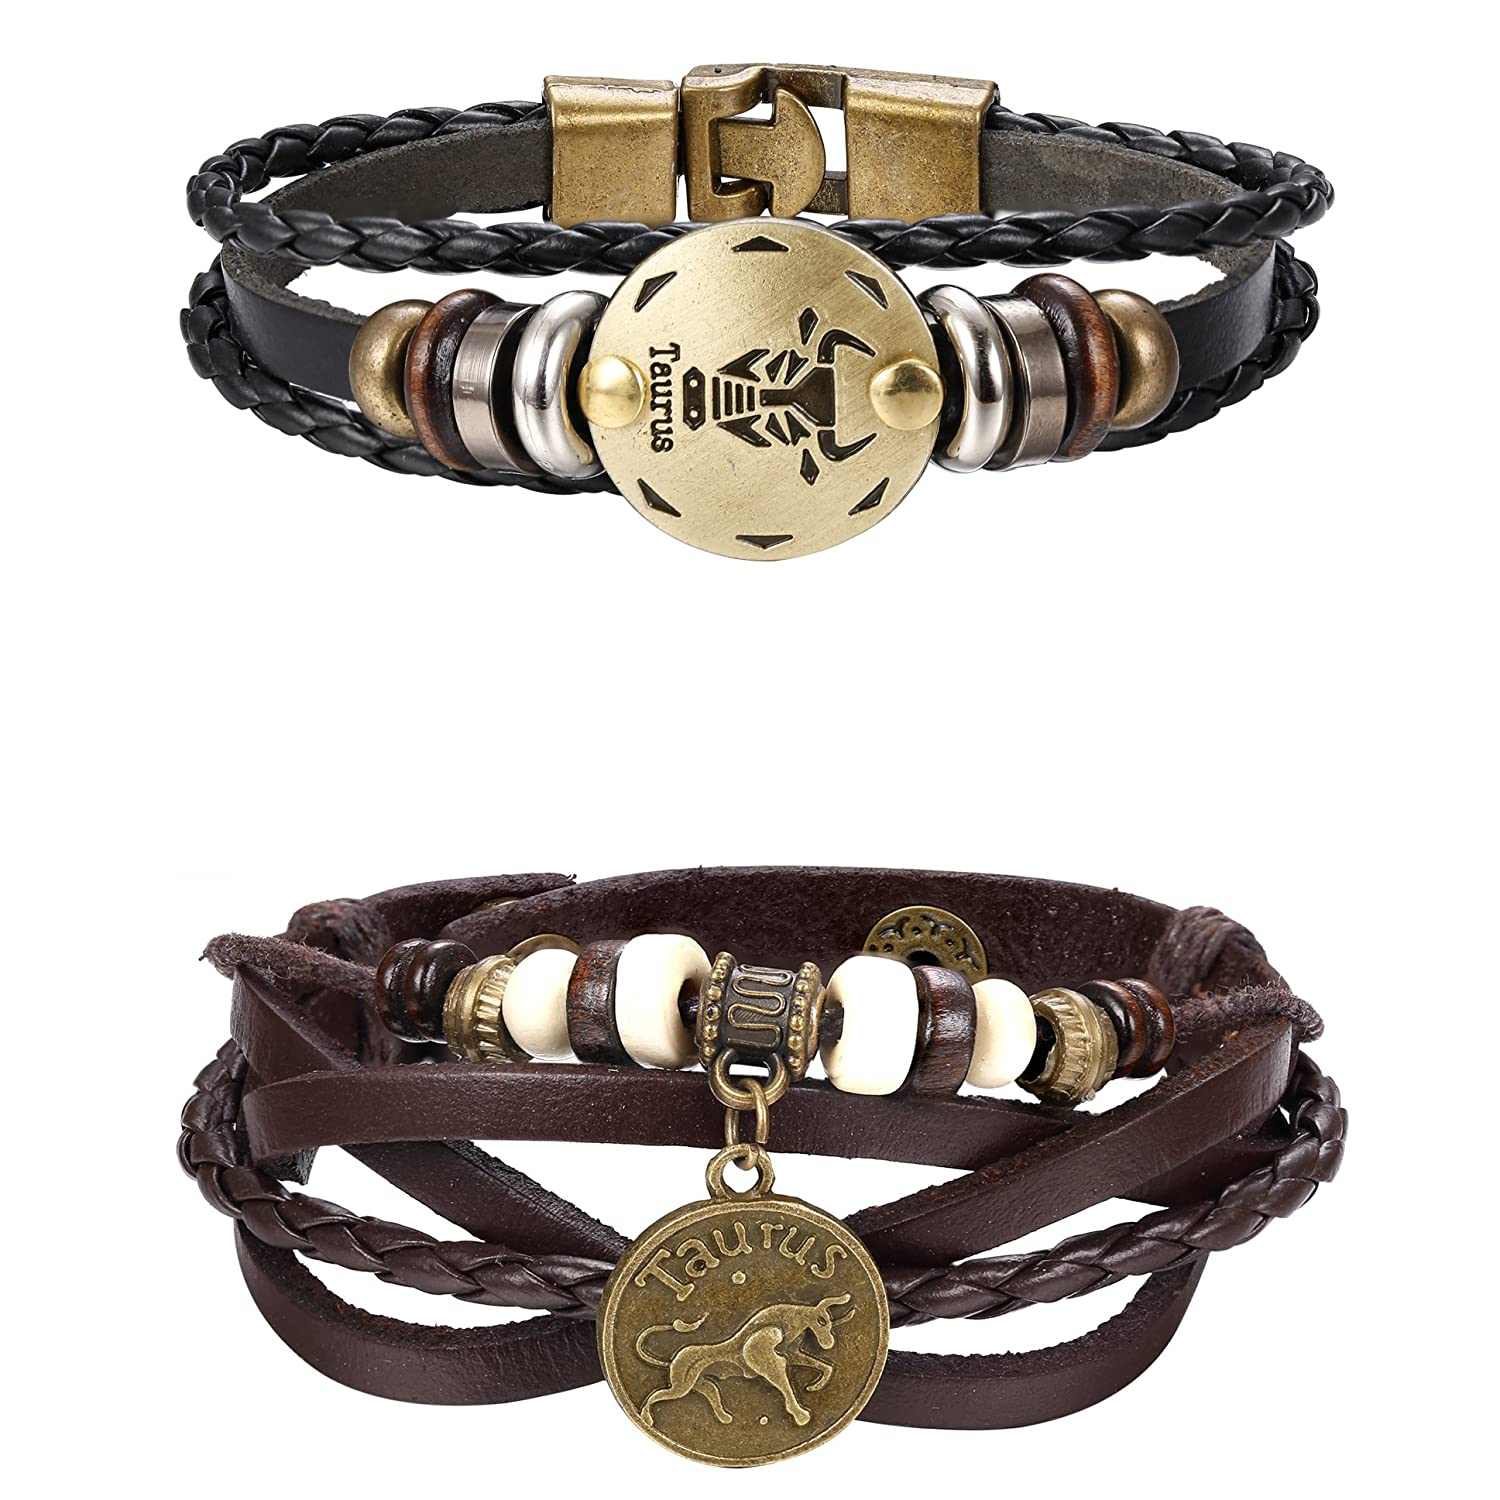 LOYALLOOK Punk Alloy Leather Bracelet for Men Constellation Braided Rope Bracelet Bangle Wristband Zodiac Sign and Zodiac Charm 2PCS DGB0005-1